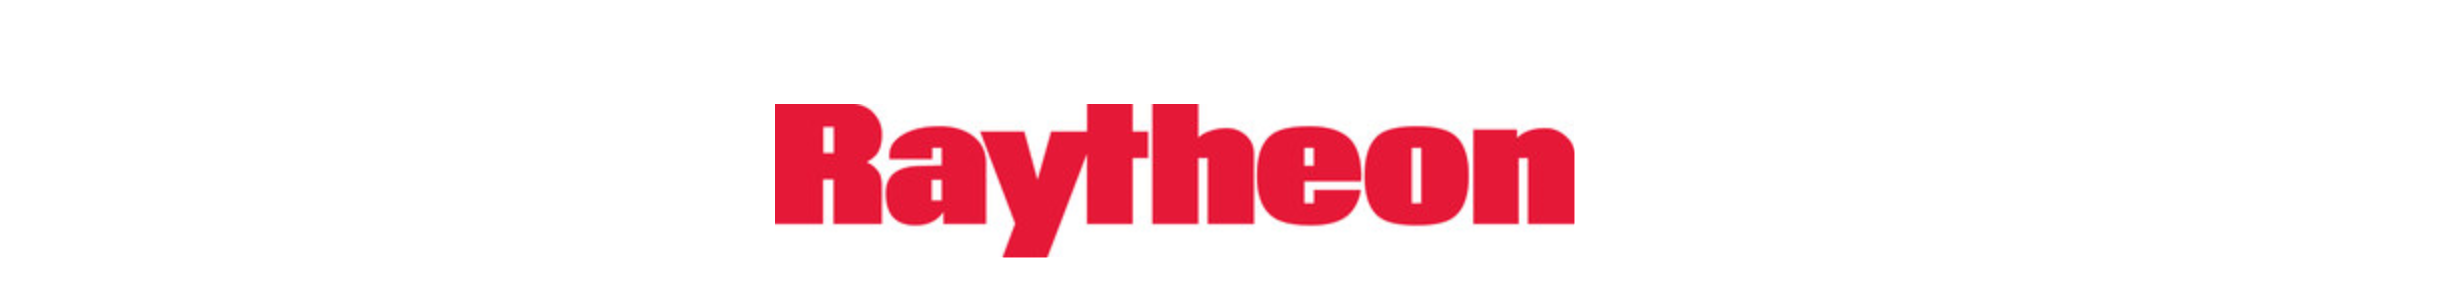 http://raytheon.mediaroom.com/2019-04-03-U-S-Air-Force-and-Raytheon-collaborate-to-modernize-space-command-and-control-system